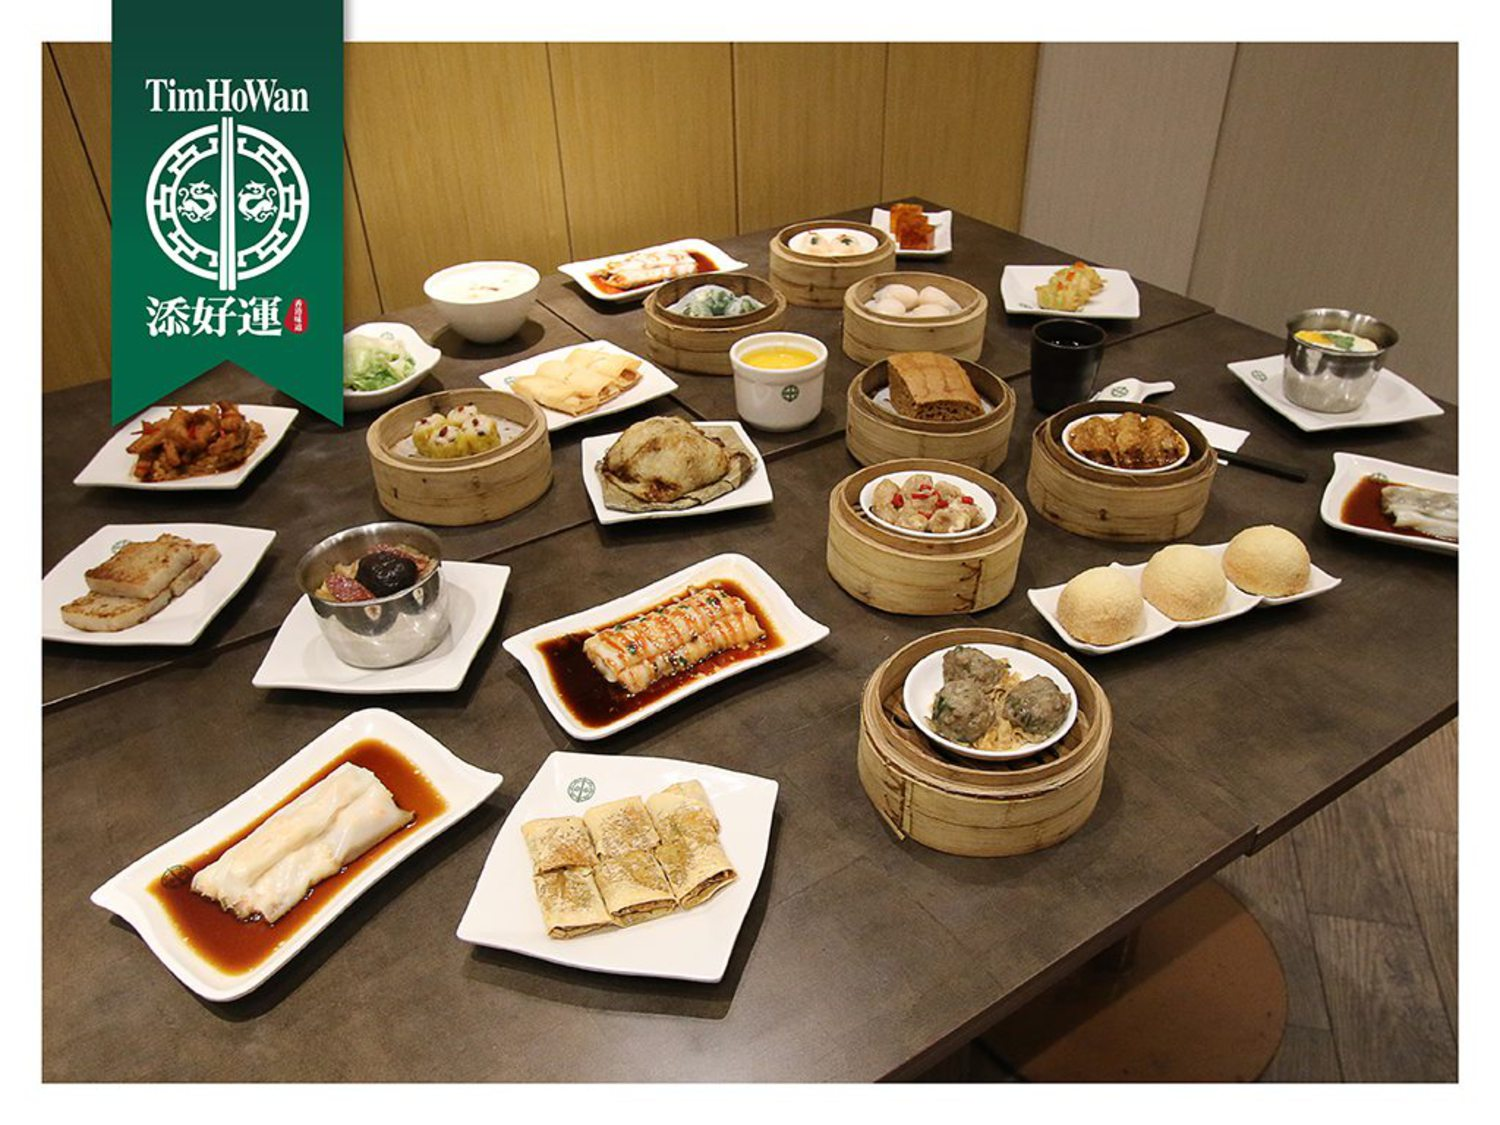 Feast your eyes on the wholesome spread at Tim Ho Wan. Feeling Hungry Yet?